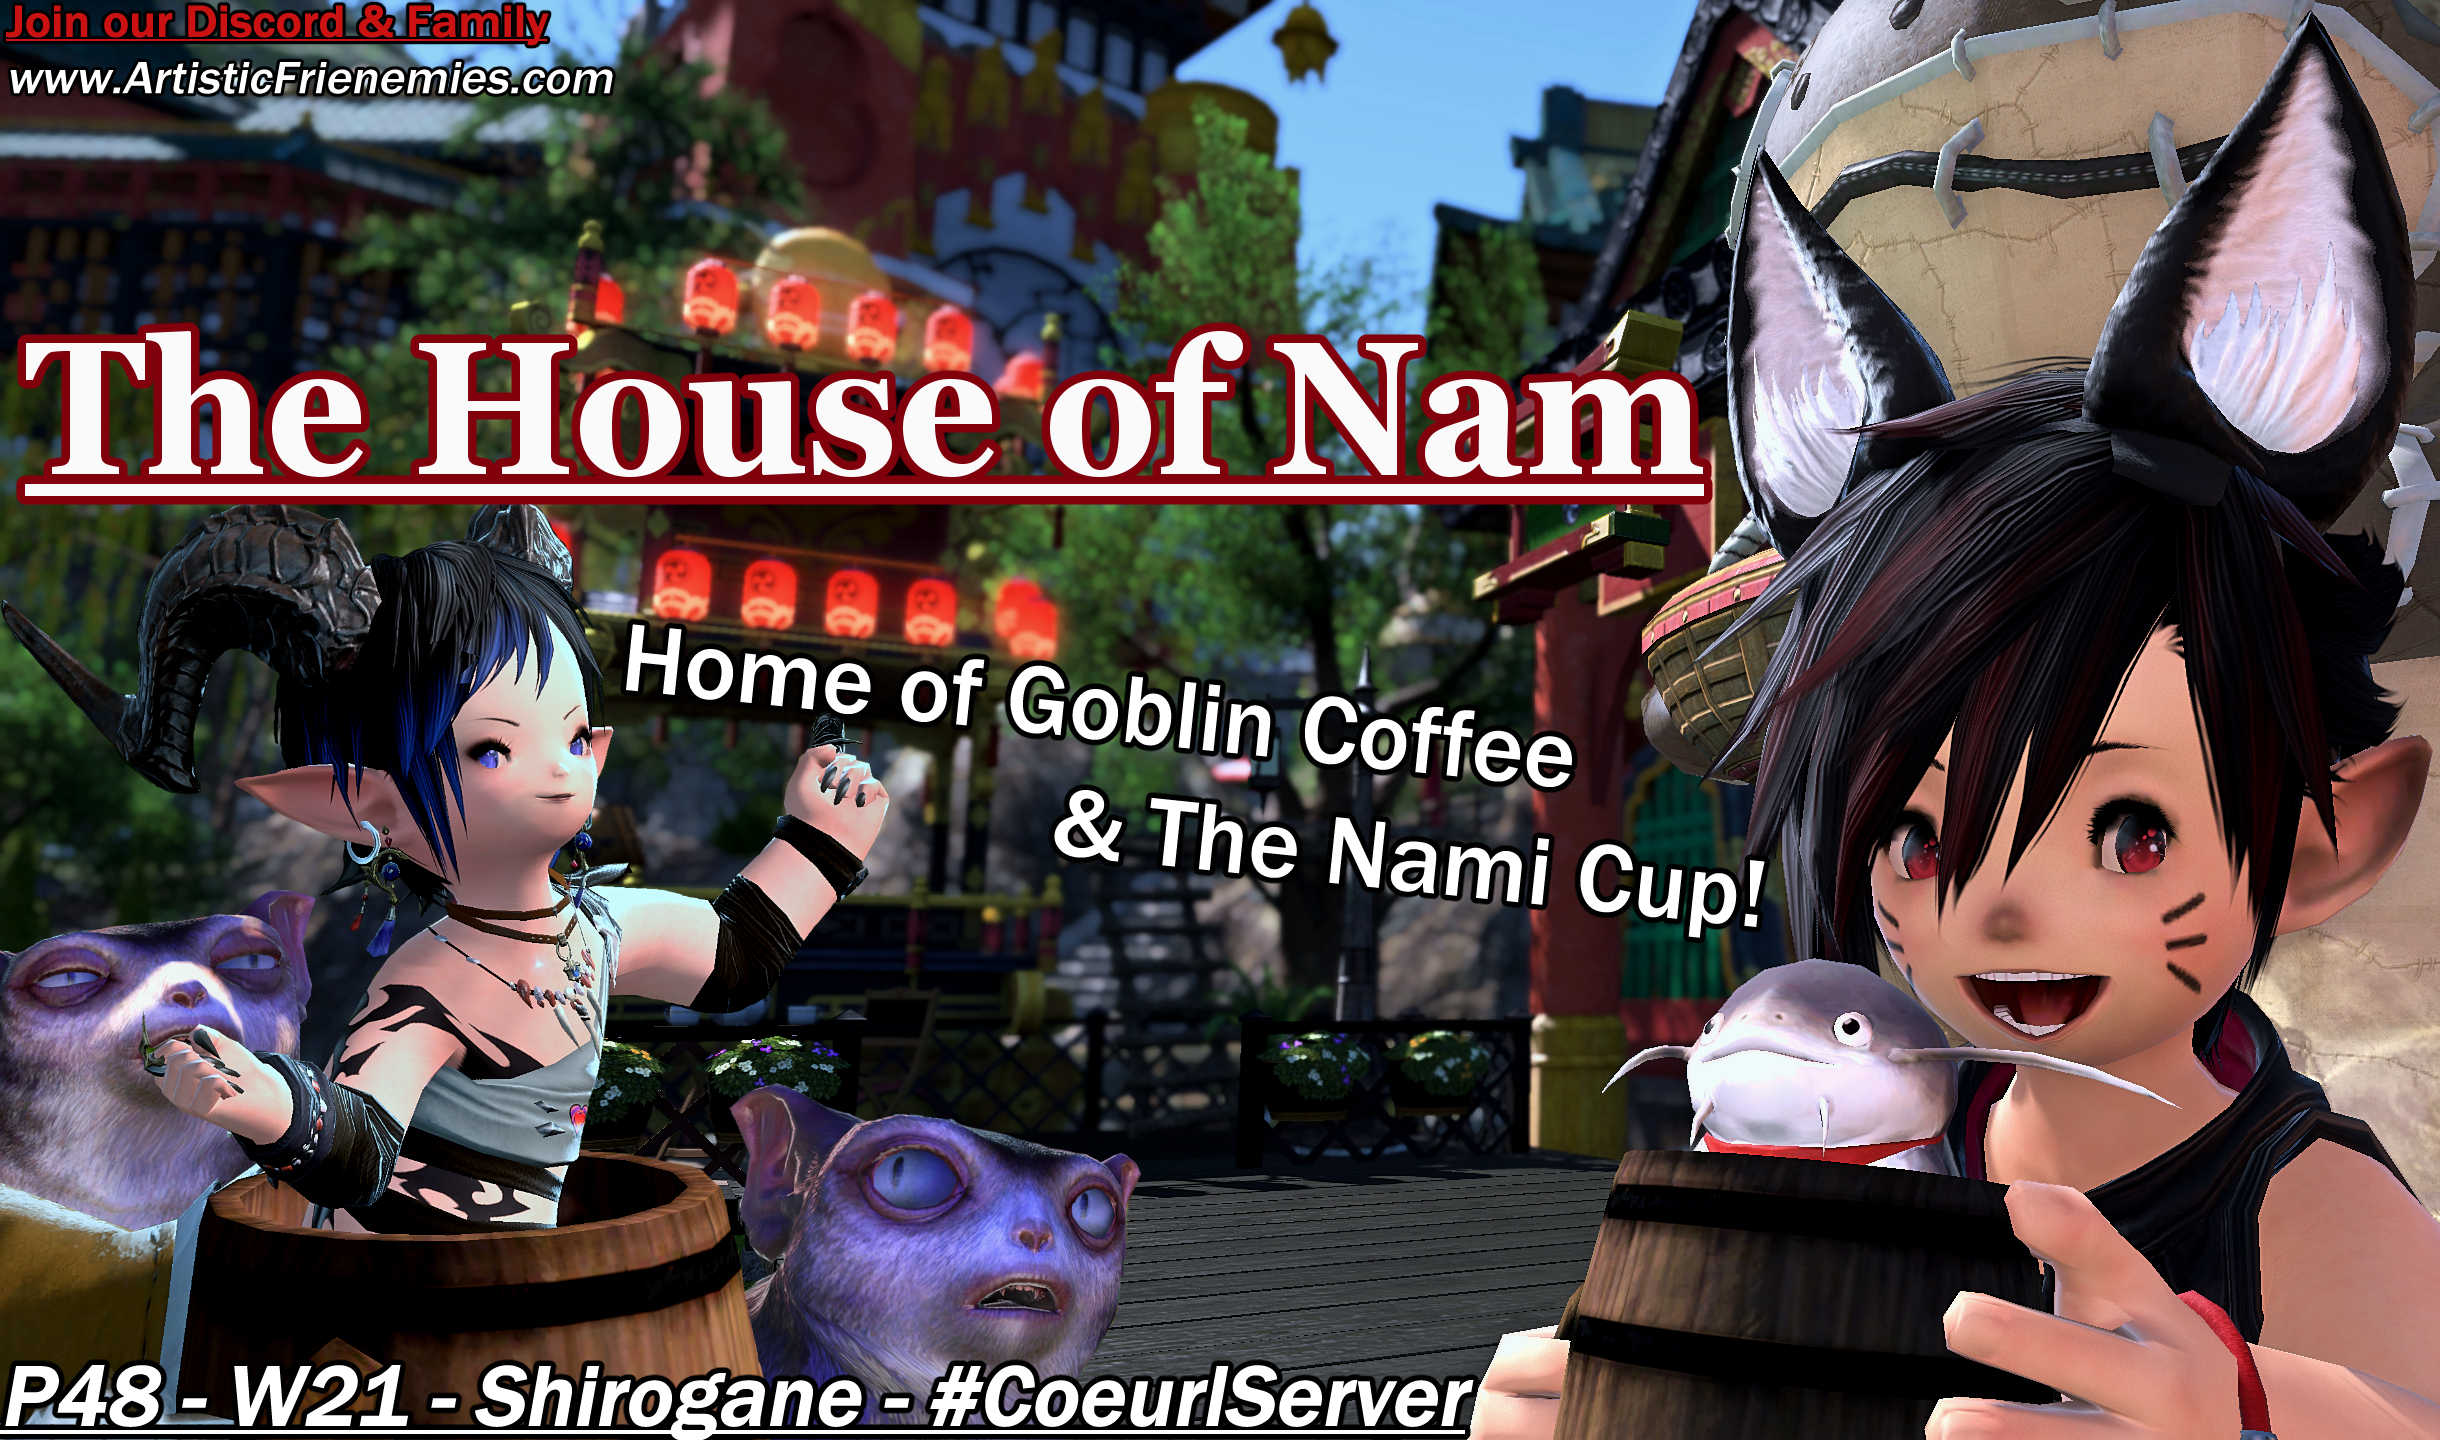 The House of Nam A fun FFXIV inspired location. Product of a joke gone way too far.